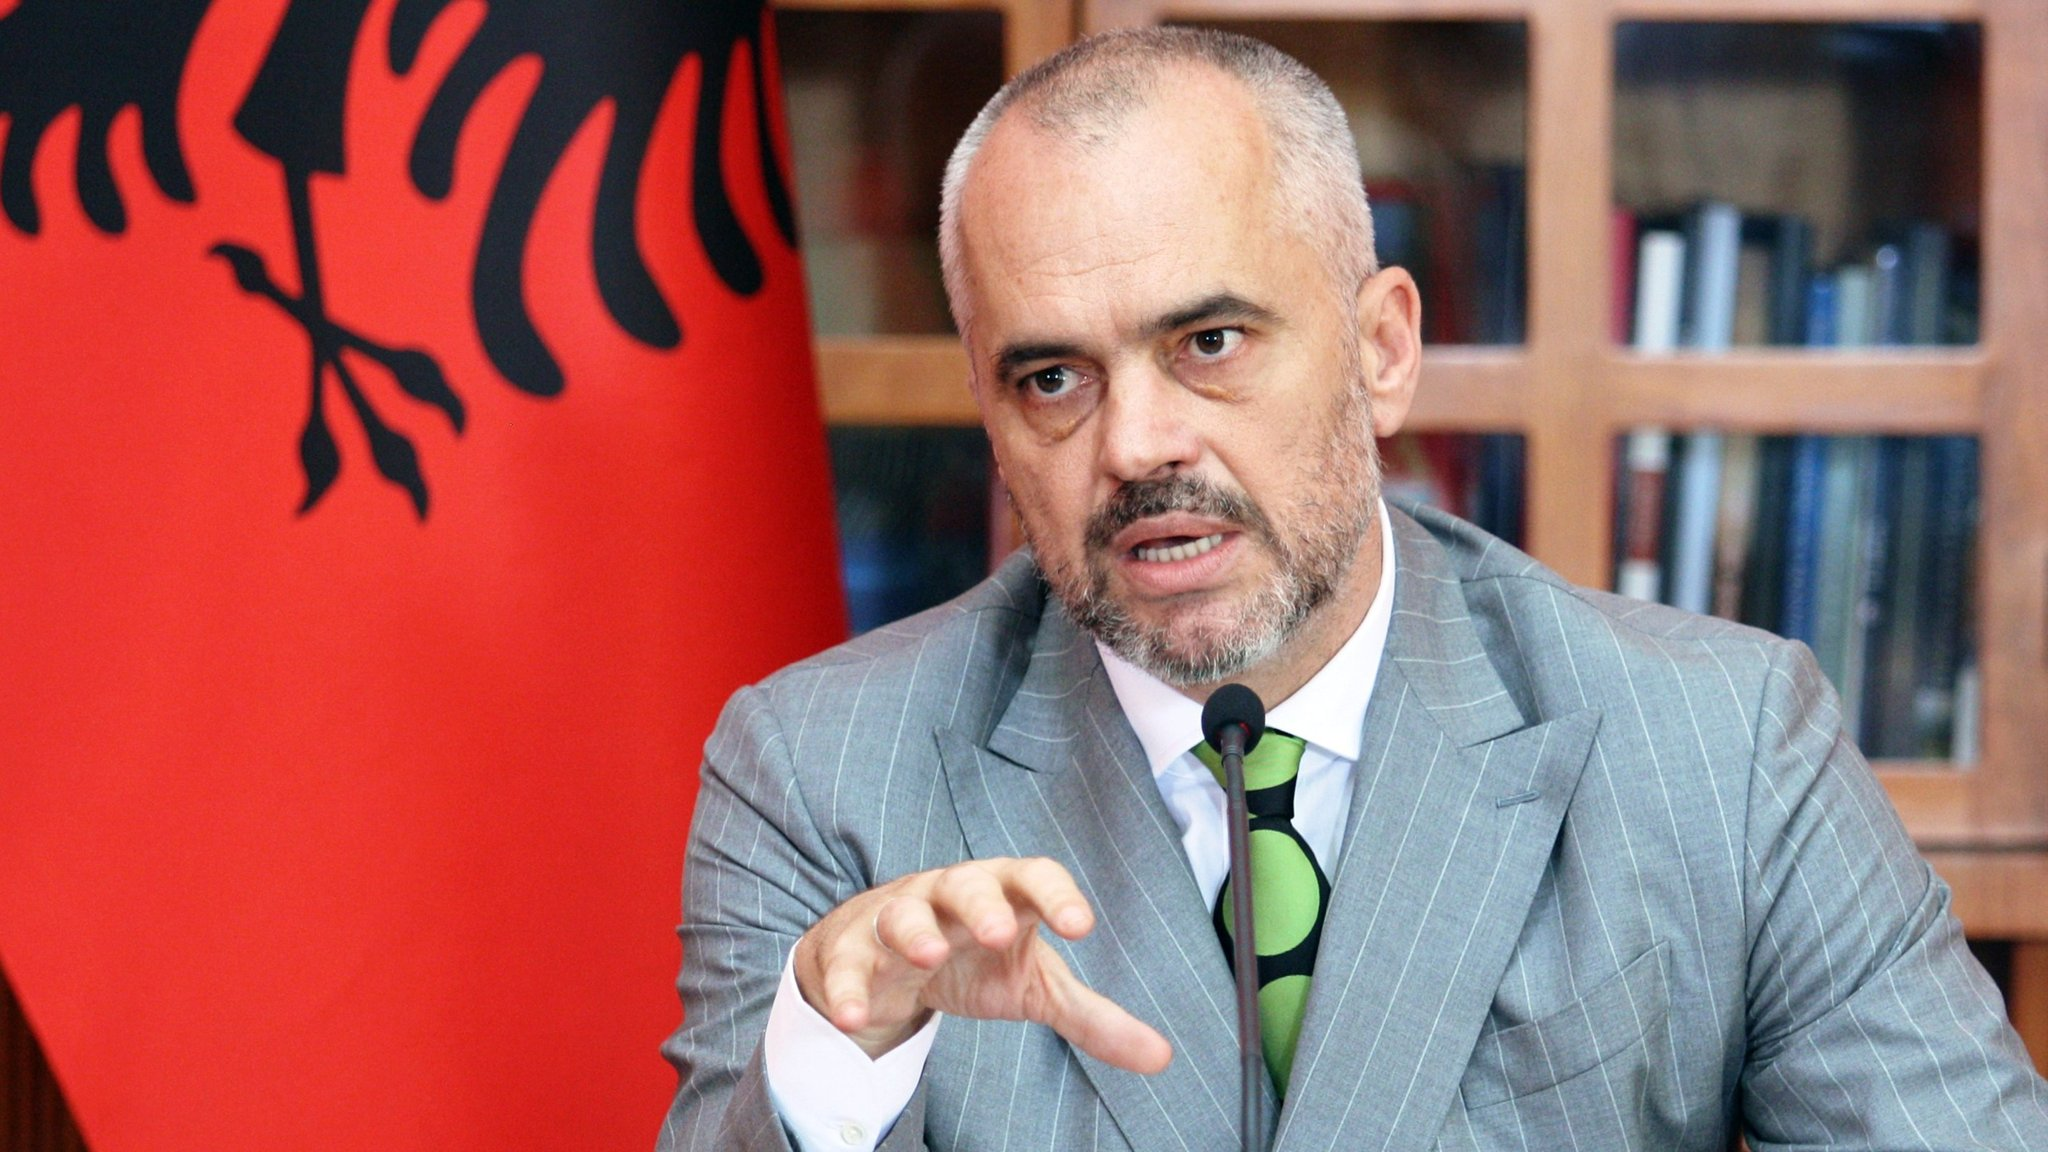 Albanian Prime Minister Edi Rama speaks during a press conference announcing the candidate status for Albania to the European Union in Tirana on June 24, 2014. Albania cleared the first hurdle on its long path to European Union membership on June 24, with the EU granting candidate status on the country's fourth try. Albania has failed to win the coveted status three times since 2009. AFP PHOTO / STRINGER        (Photo credit should read STRINGER/AFP/Getty Images)